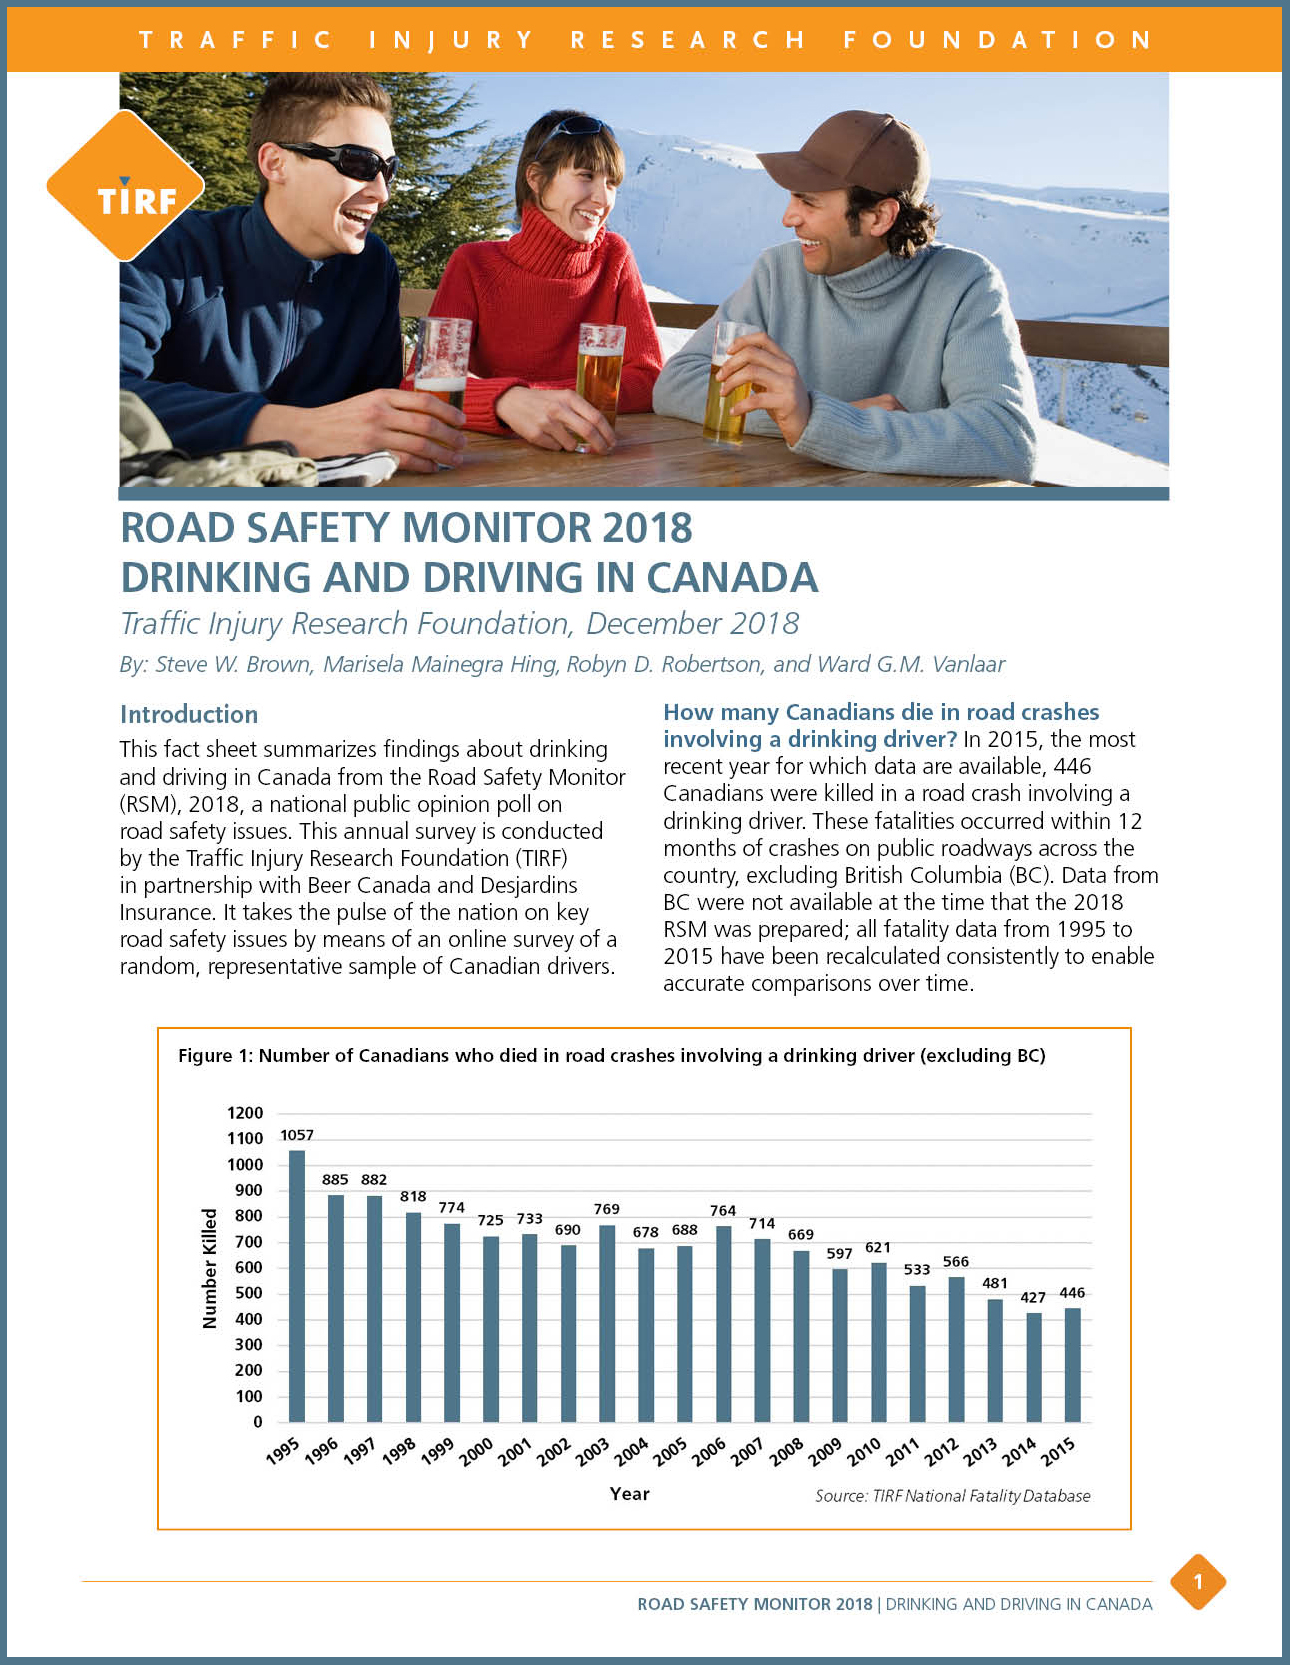 Road Safety Monitor 2018: Drinking and Driving in Canada